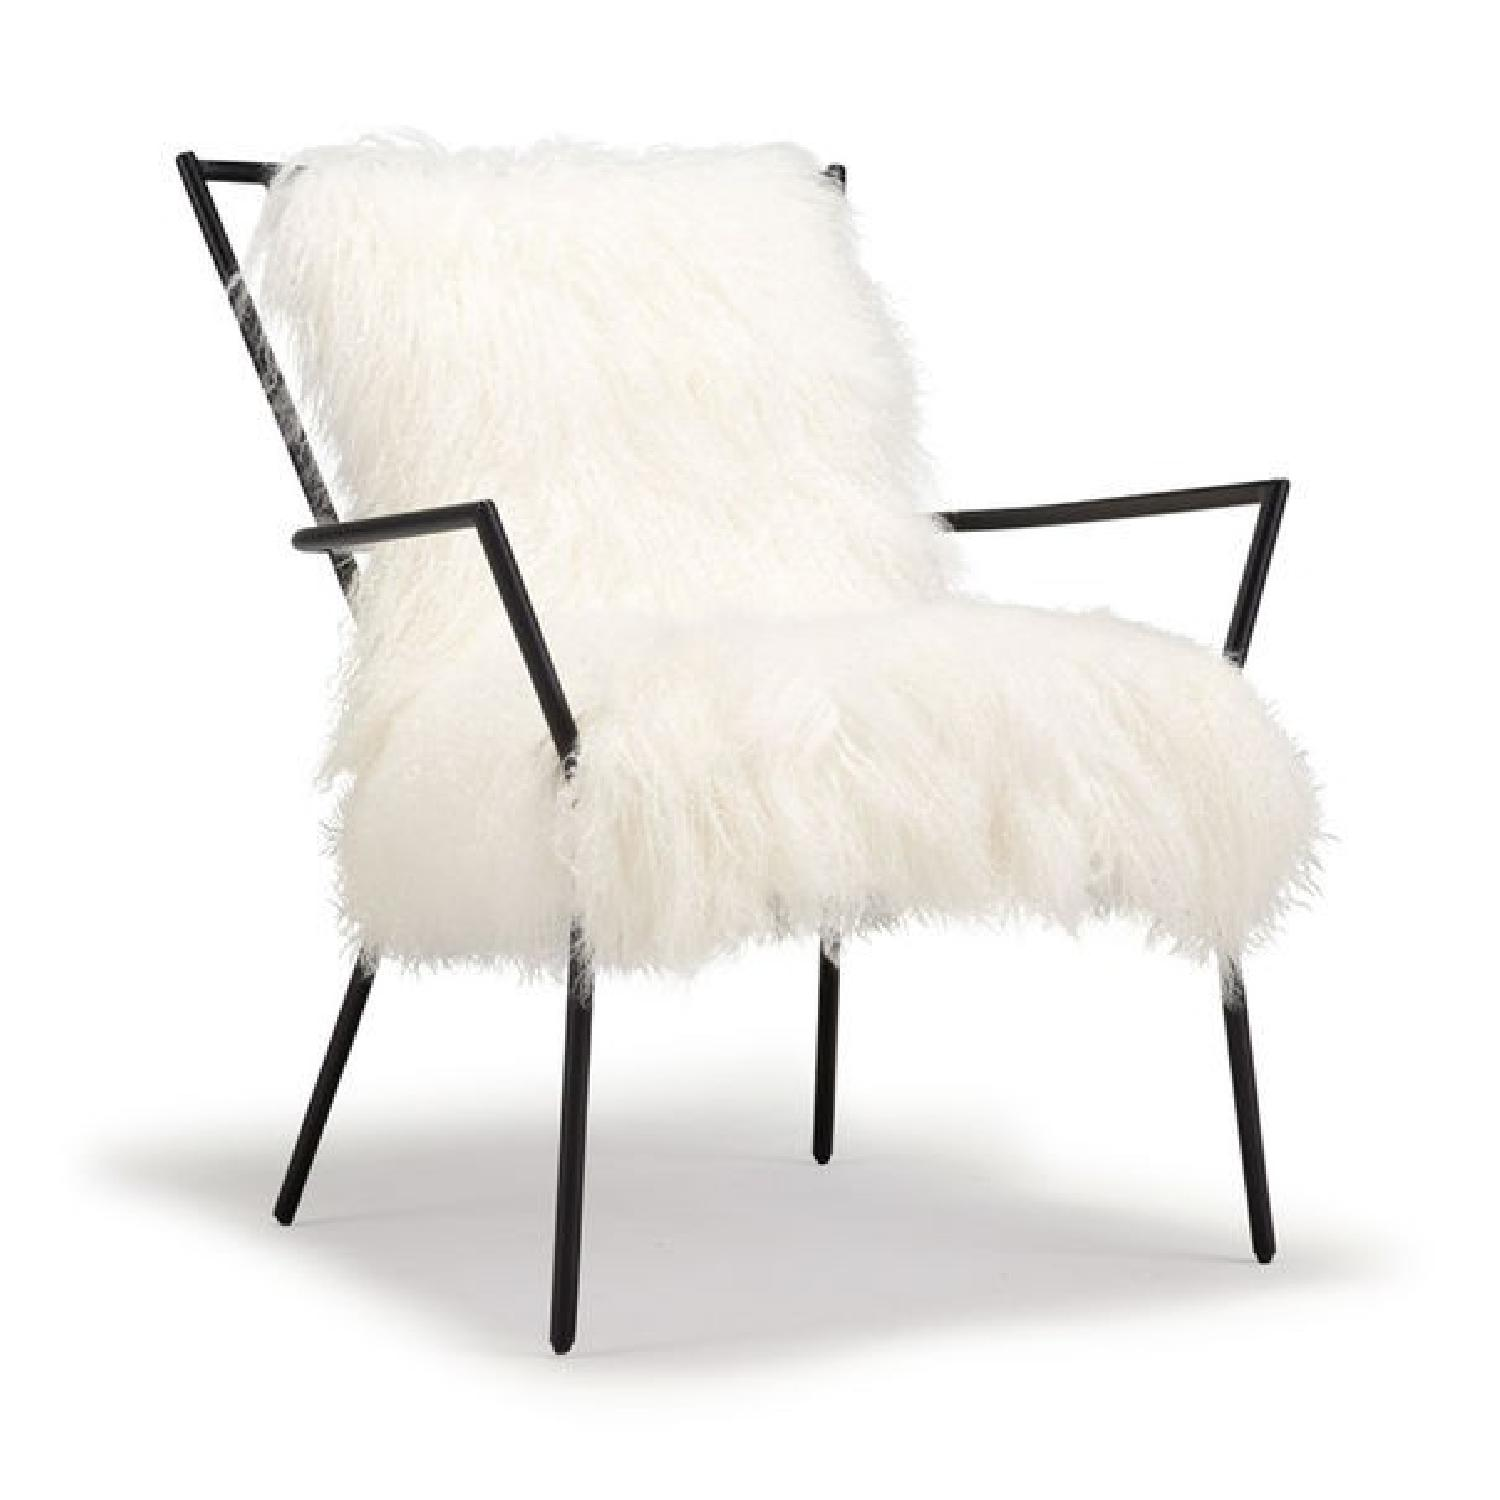 Mitchell Gold + Bob Williams Ansel Chair in White Fur